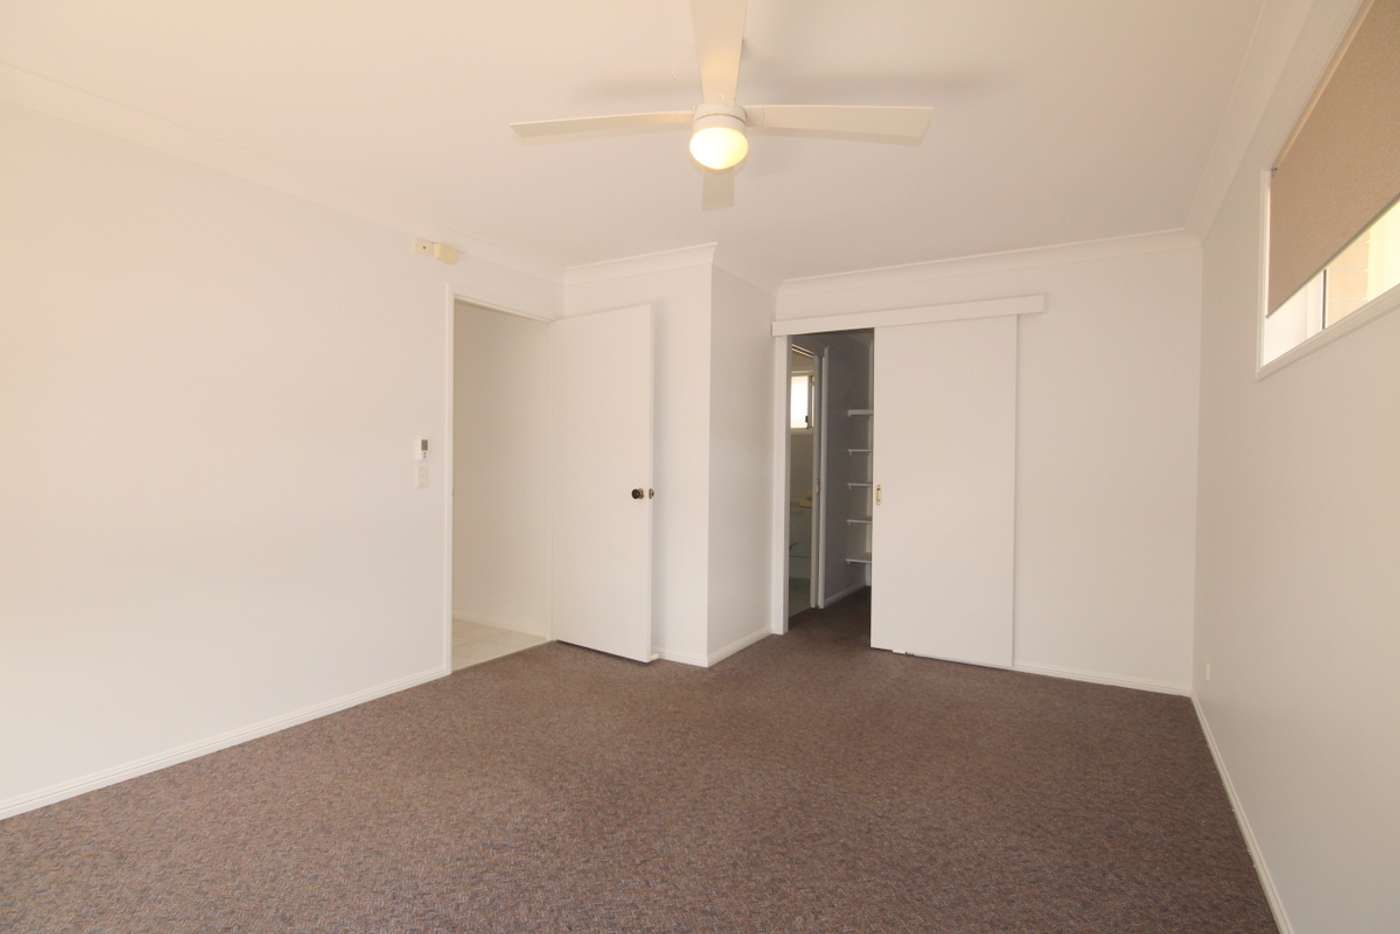 Seventh view of Homely house listing, 67 HICKEY WAY, Carrara QLD 4211